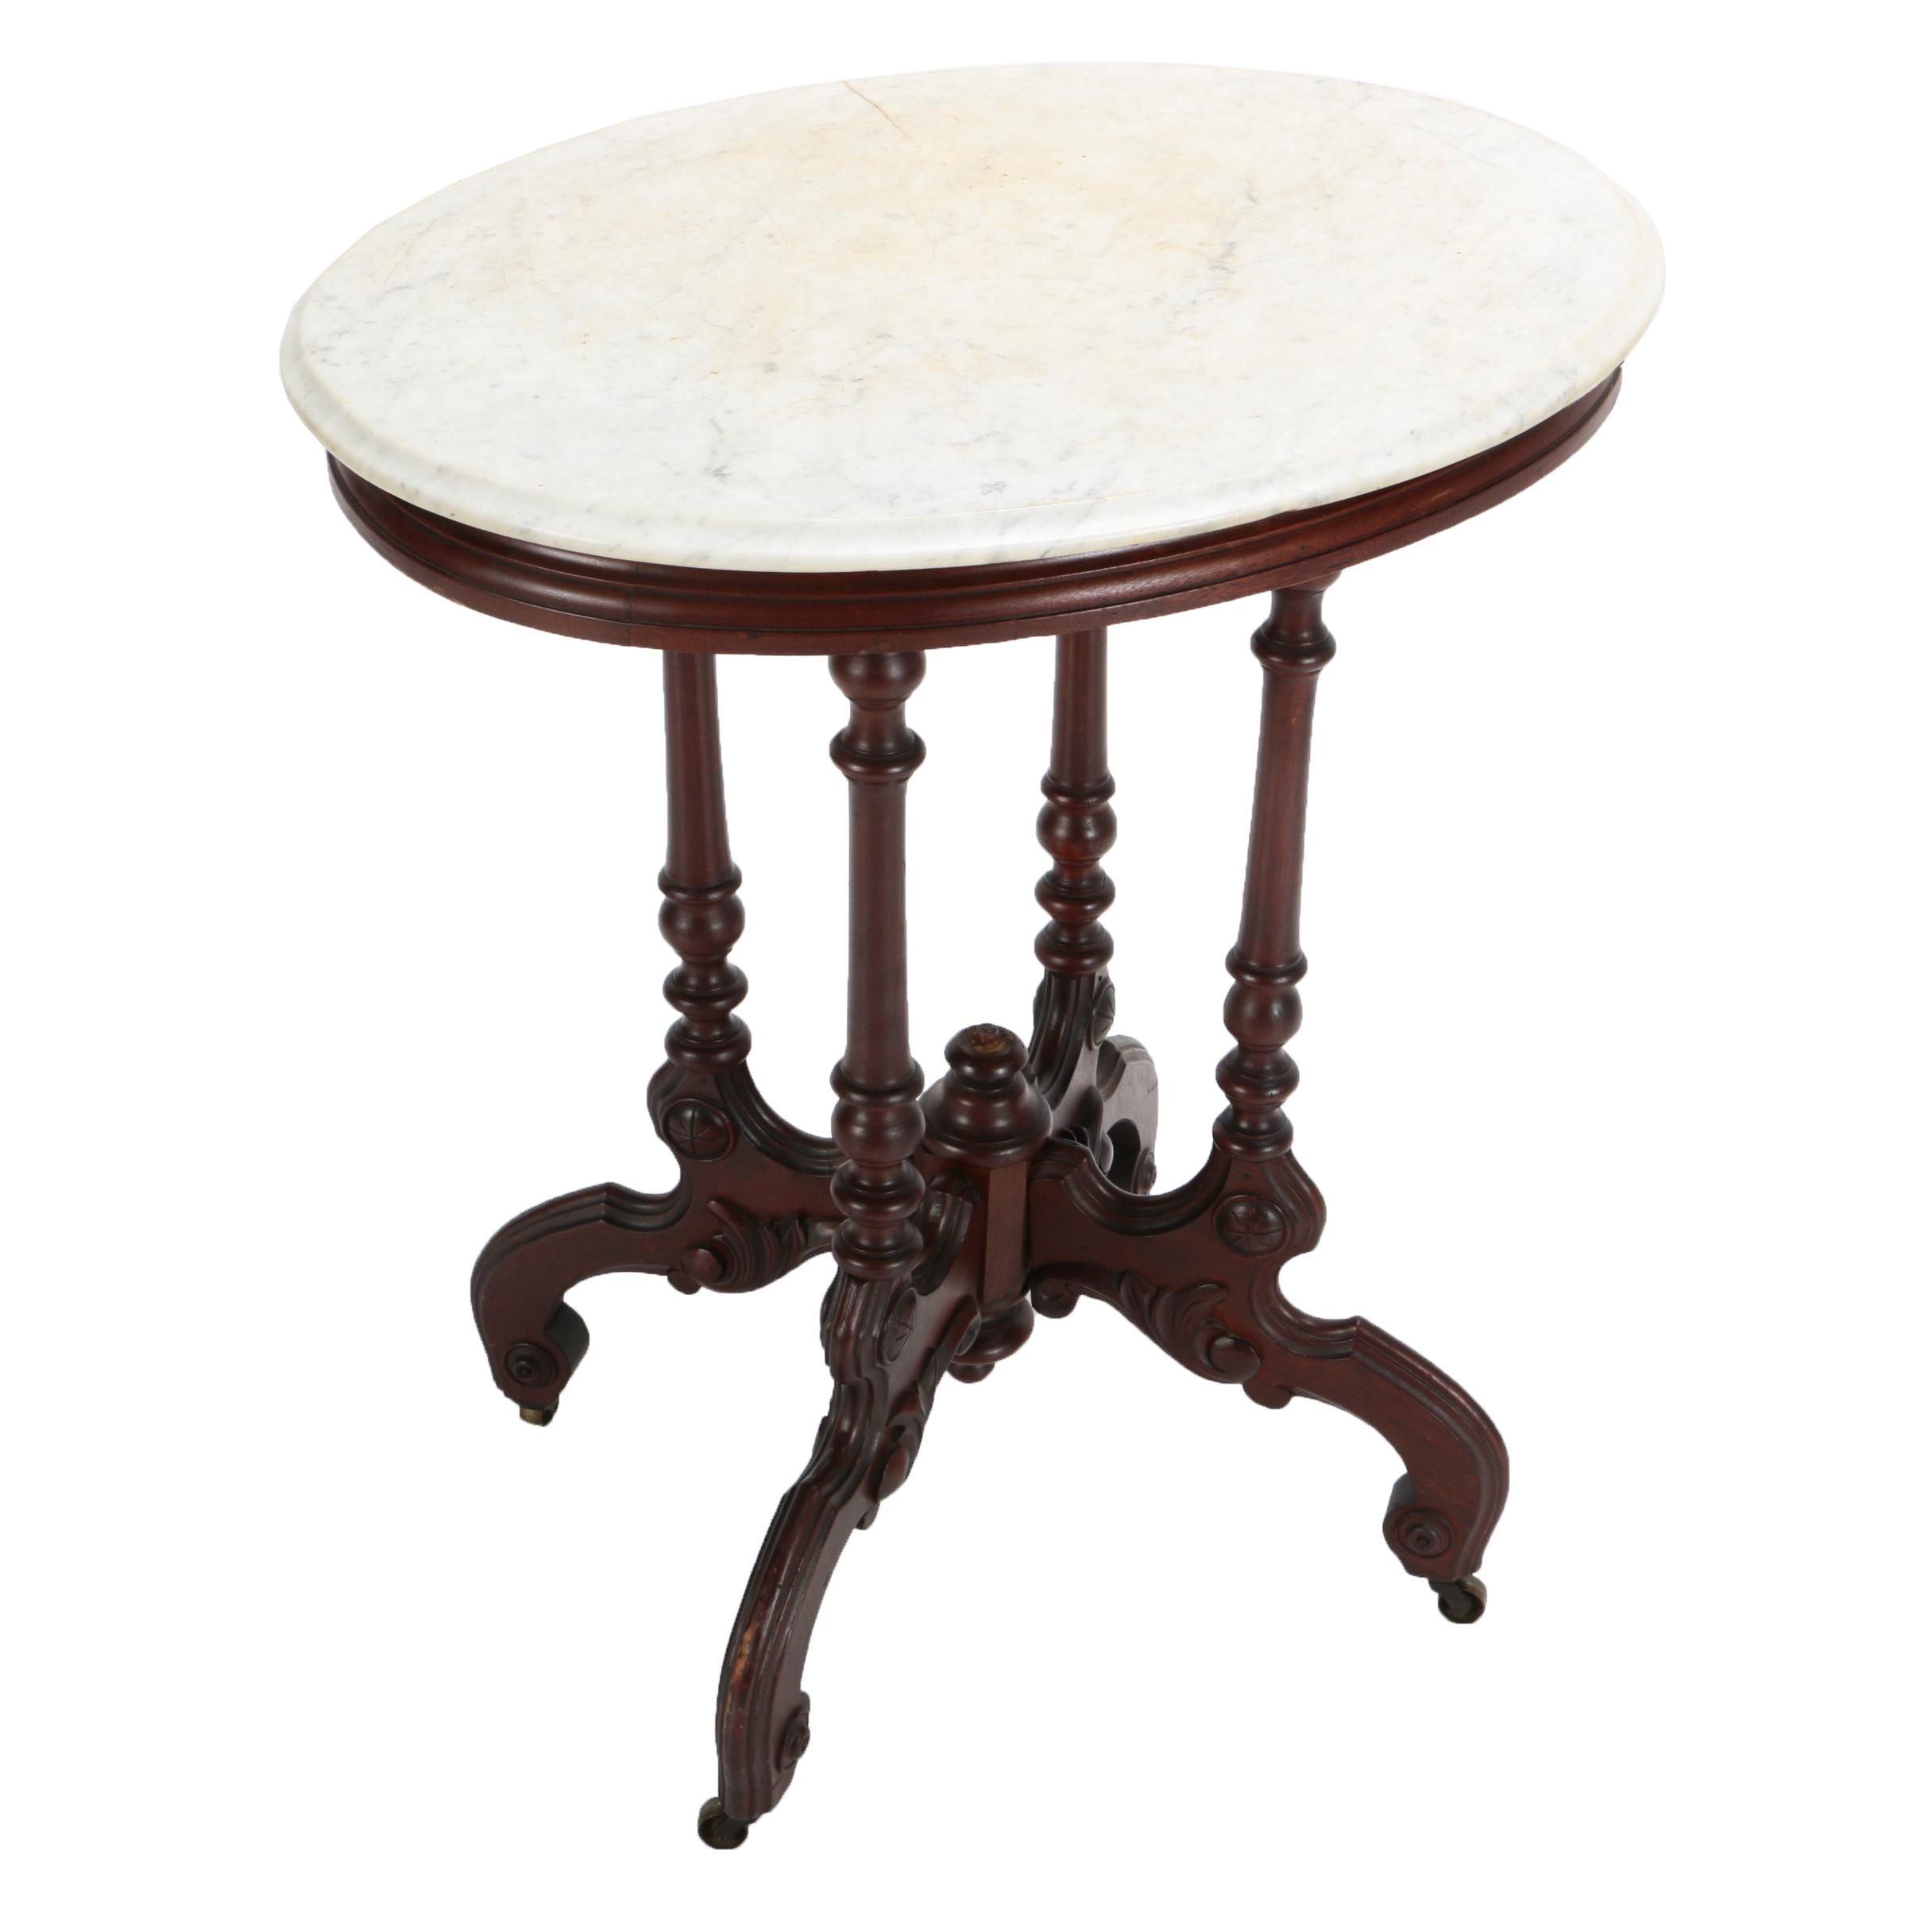 Vintage Eastlake Style Marble Top Accent Table